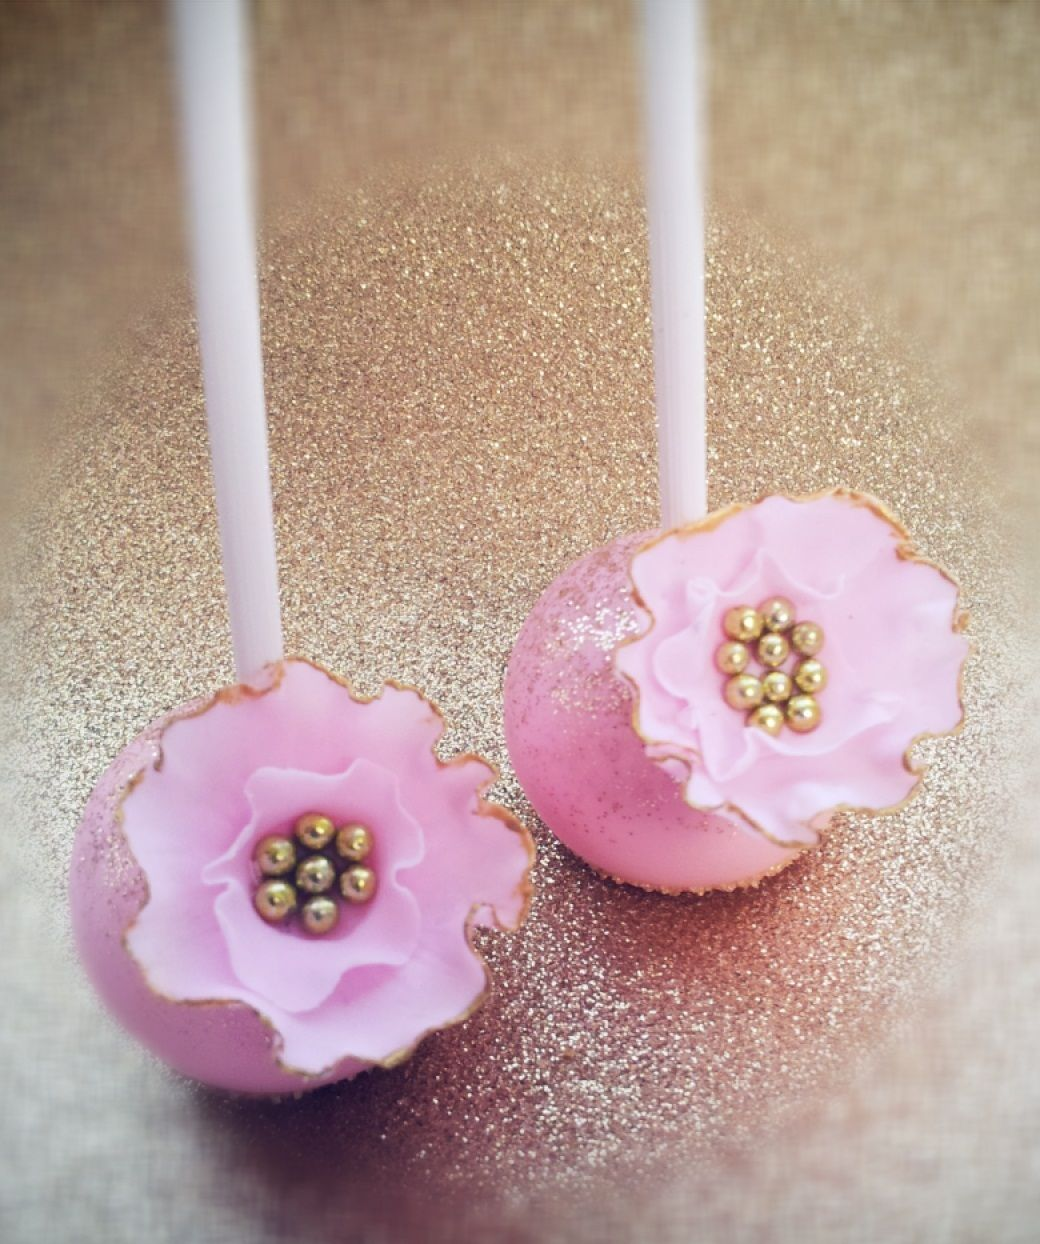 Indian wedding inspirations pink wedding cake pops repinned by